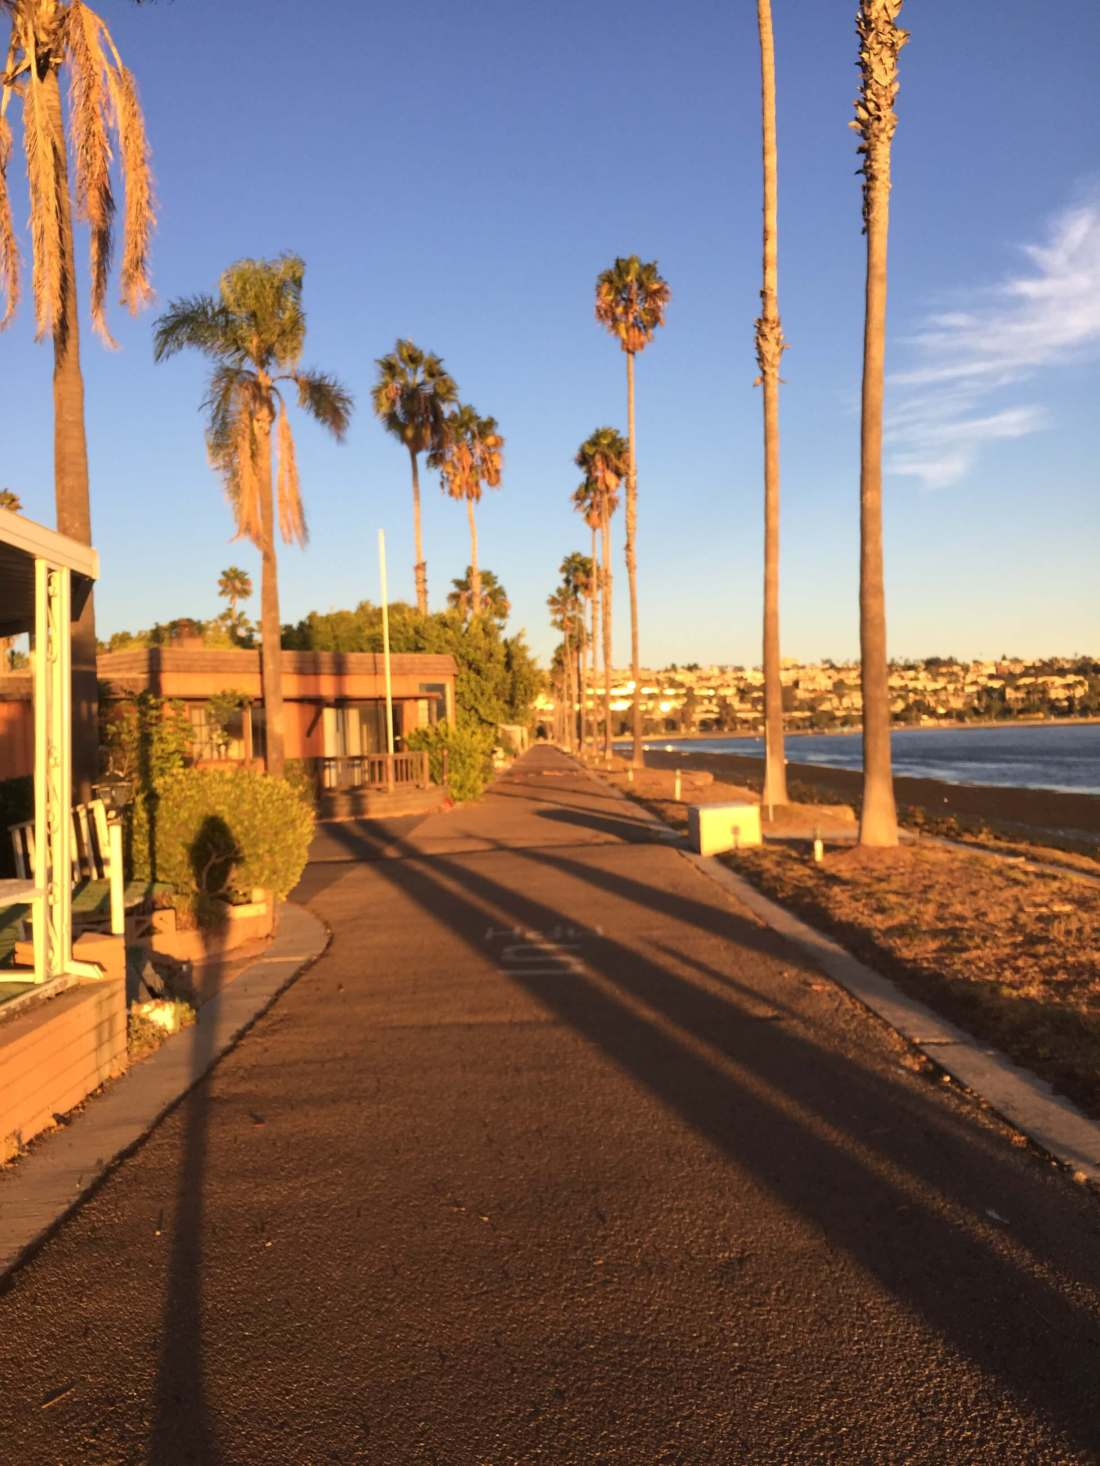 Mission Bay, How Much Does it cost to live in an rv with kids